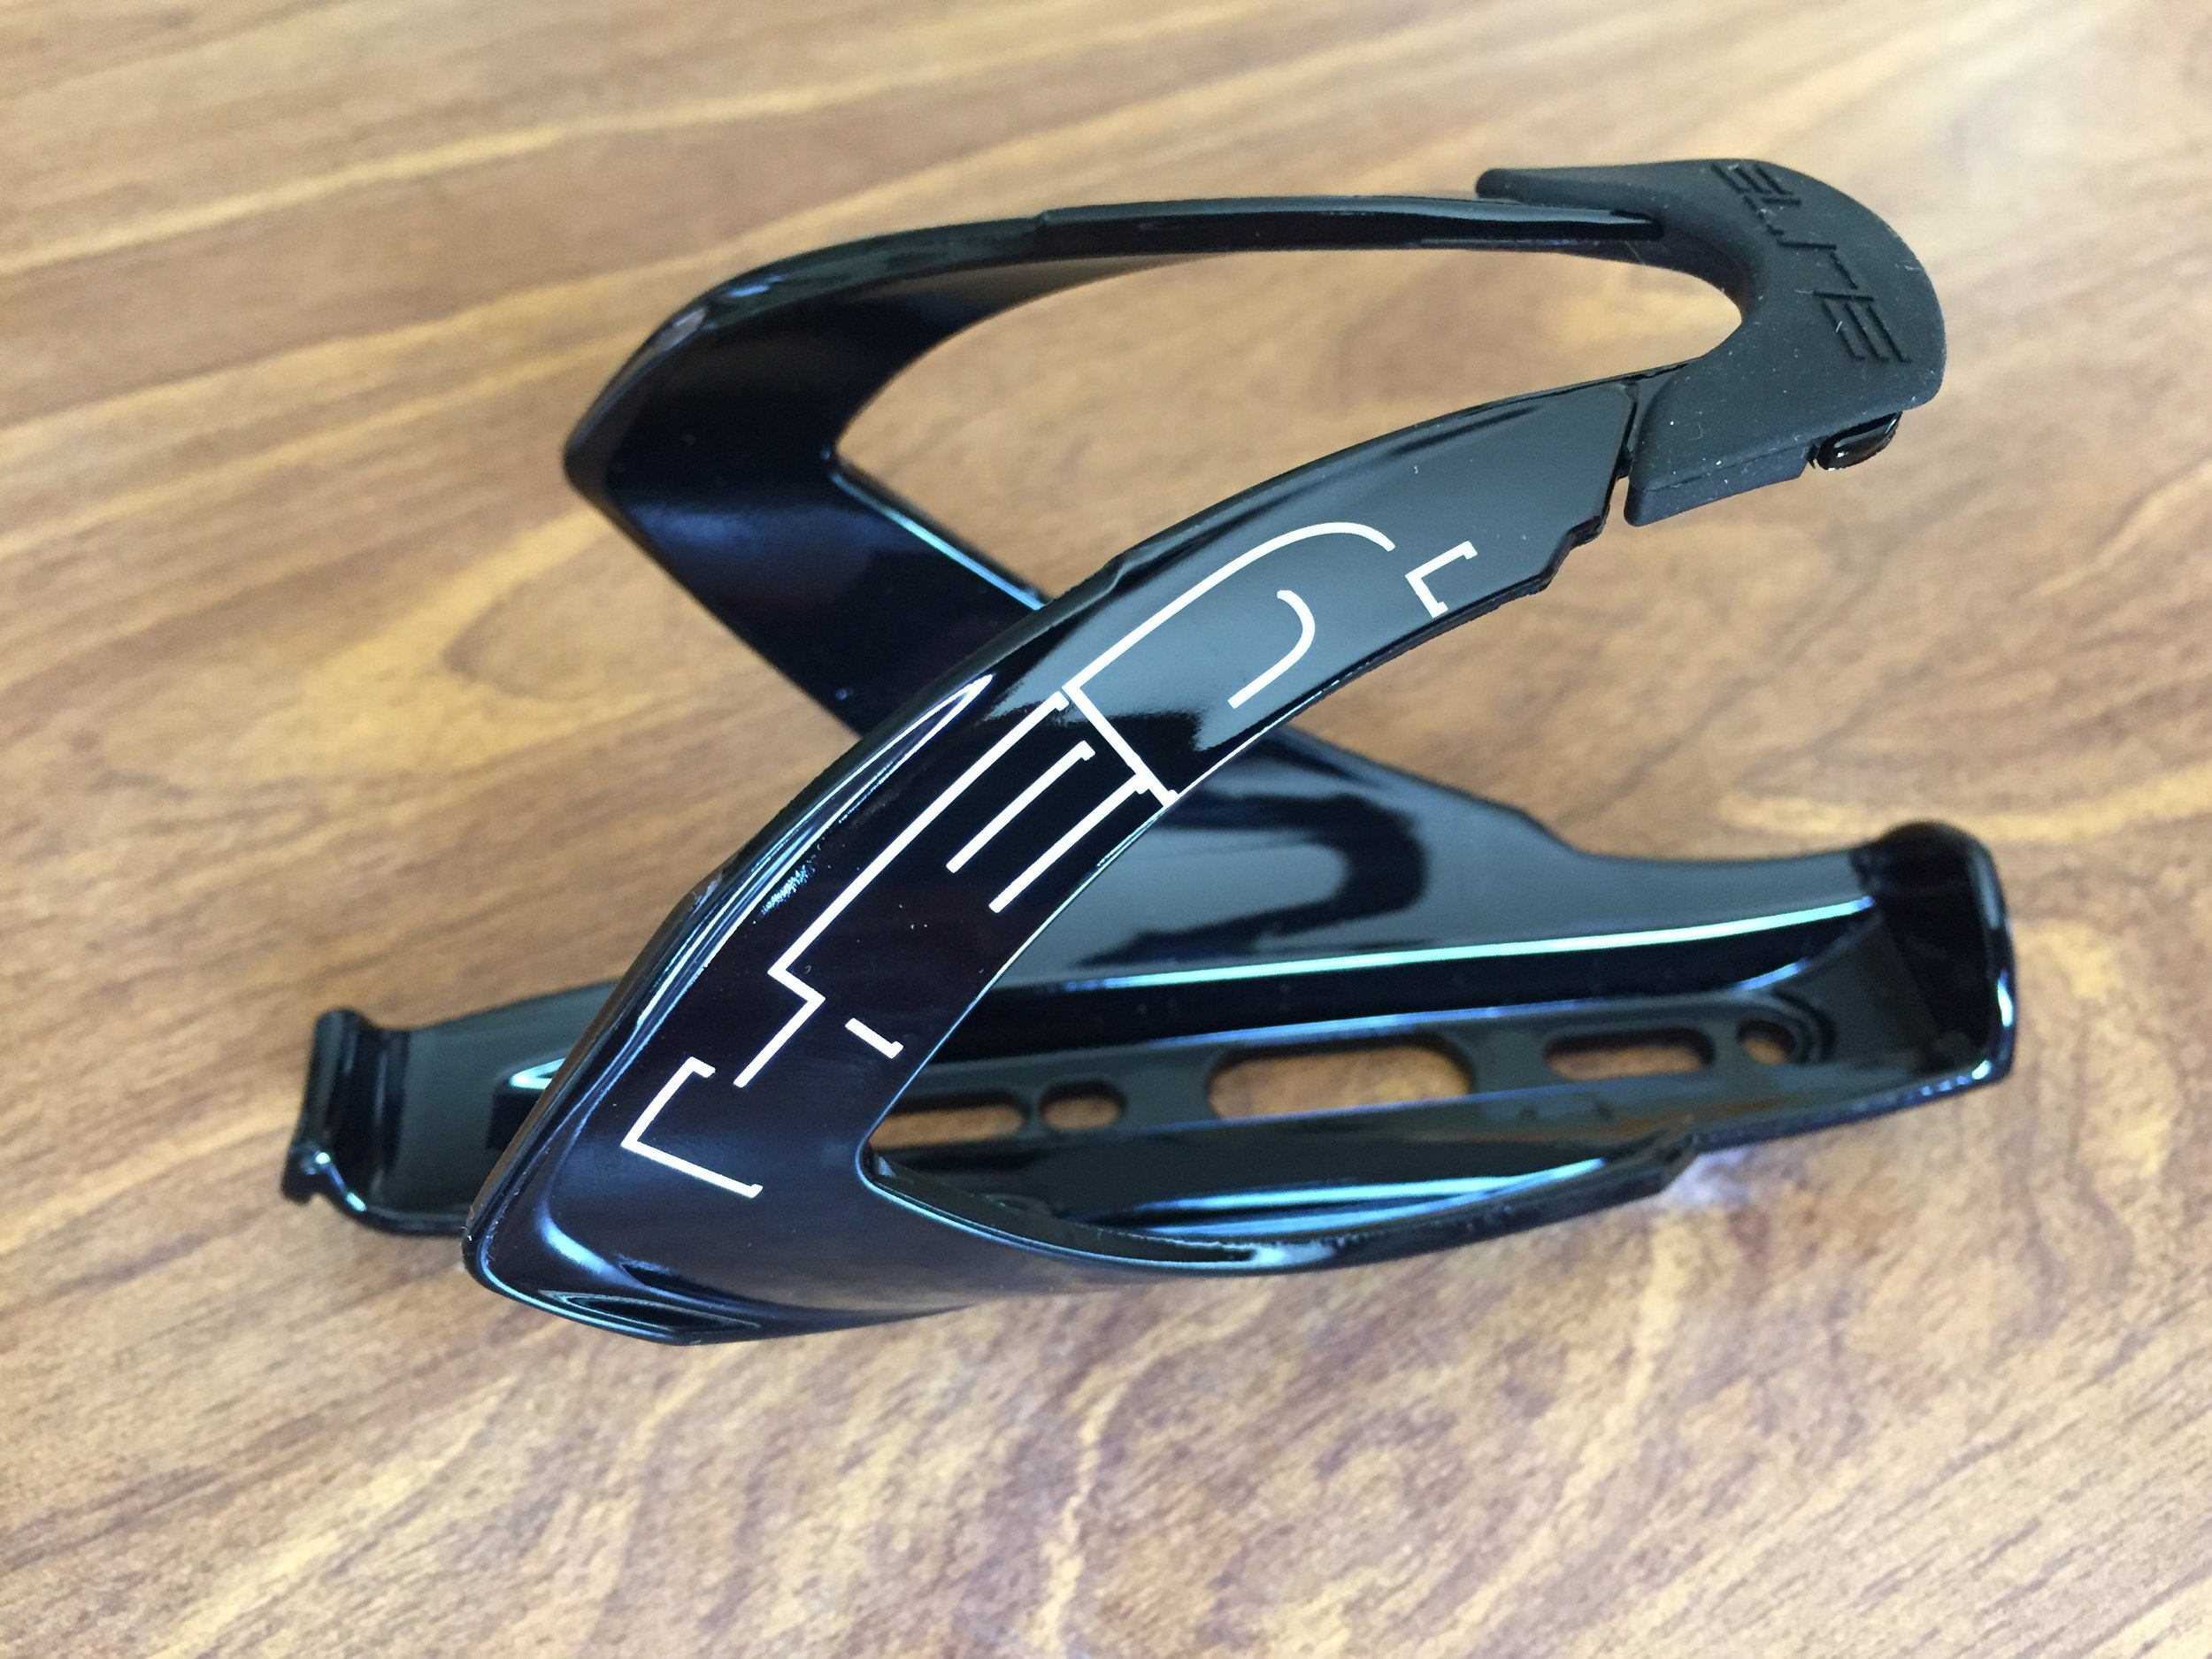 HED water bottle cage designed by Elite.